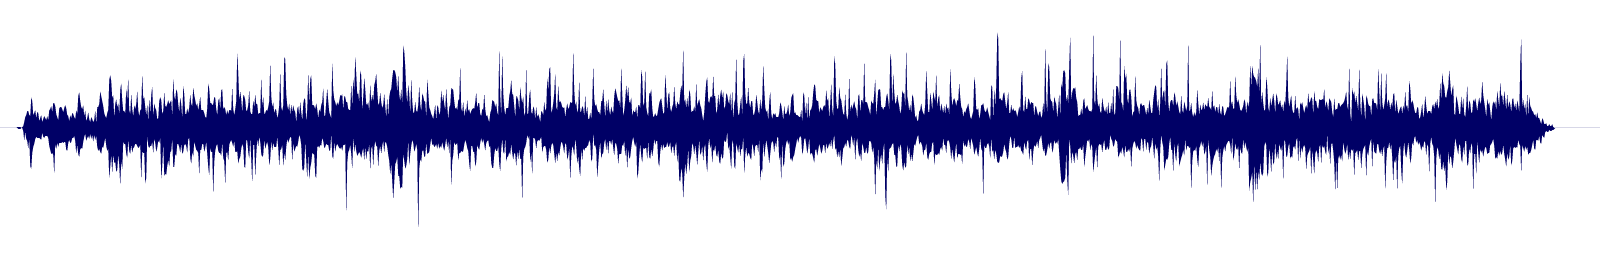 waveform of track #125568